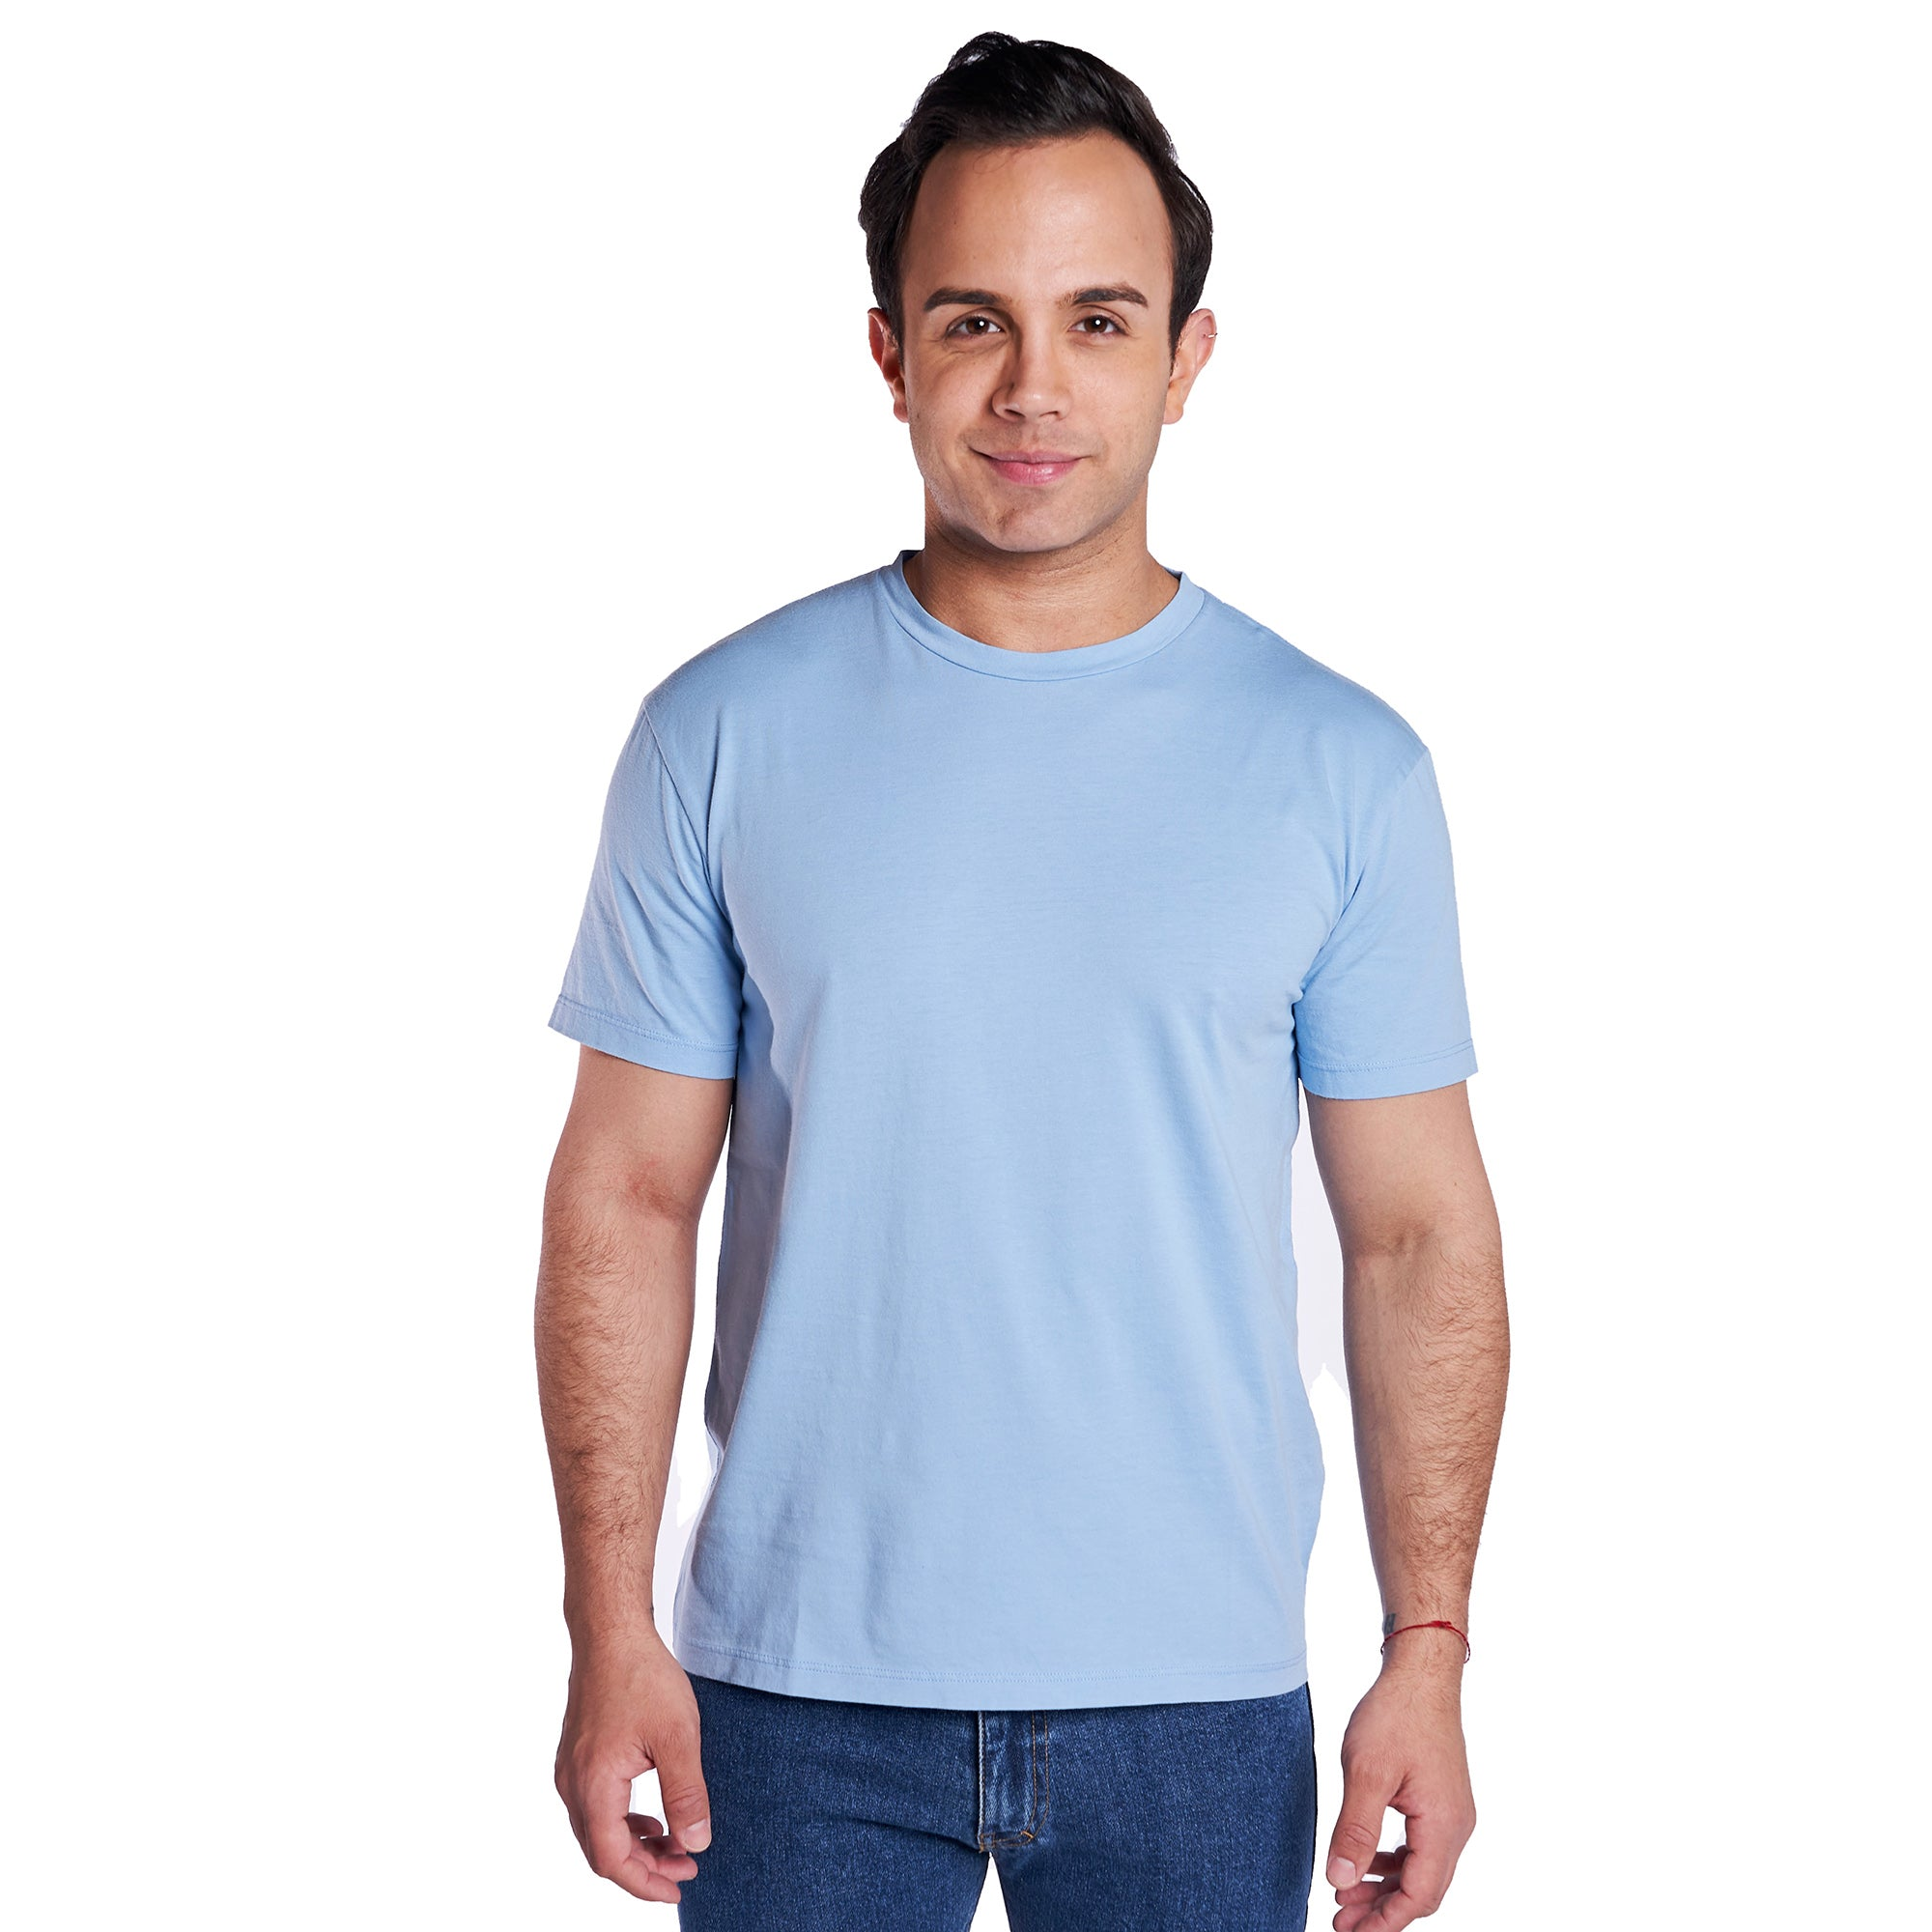 Vintage Crew T-Shirt - Pale Blue